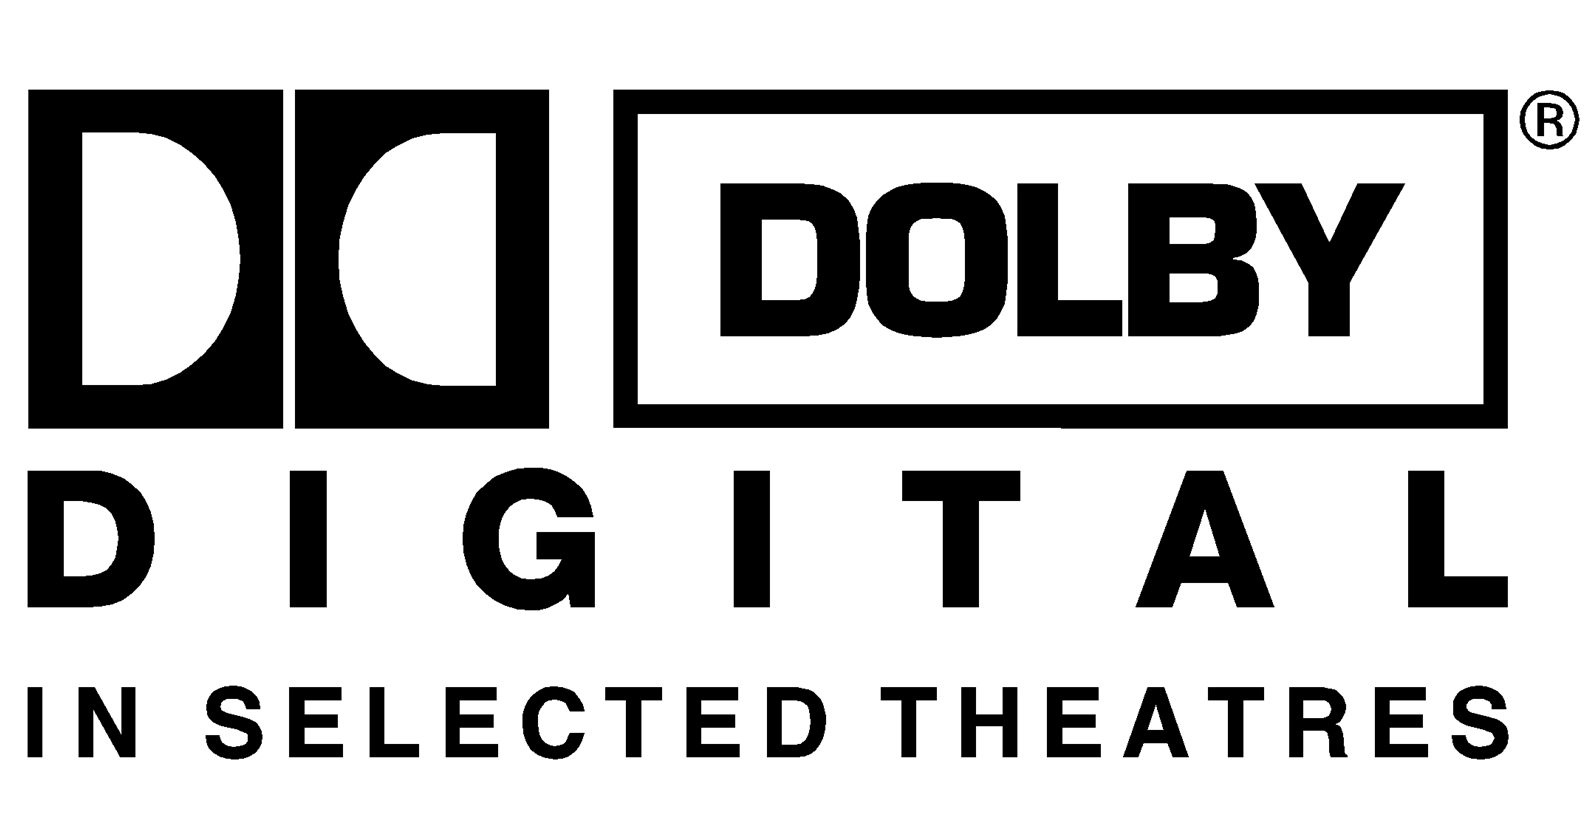 image dolby digital logo png logopedia fandom powered by wikia rh logos wikia com dolby digital logo imdb dolby digital logo icon download